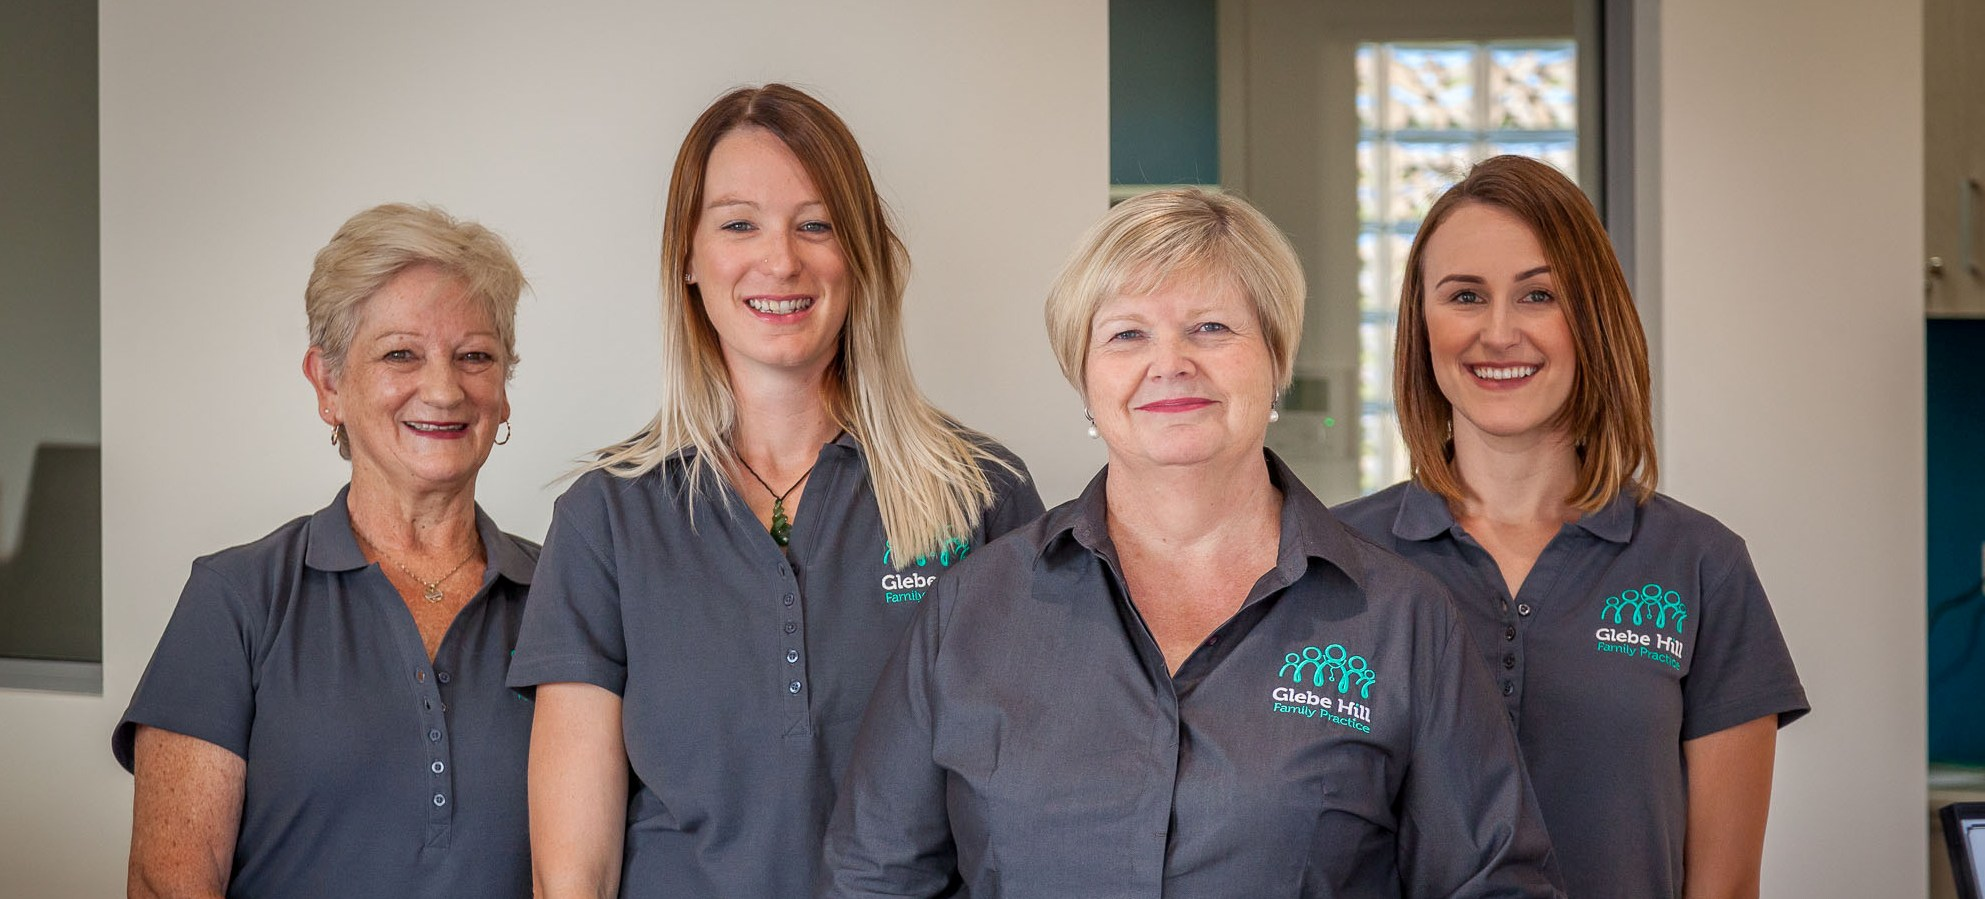 Glebe Hill Family Practice Reception Team